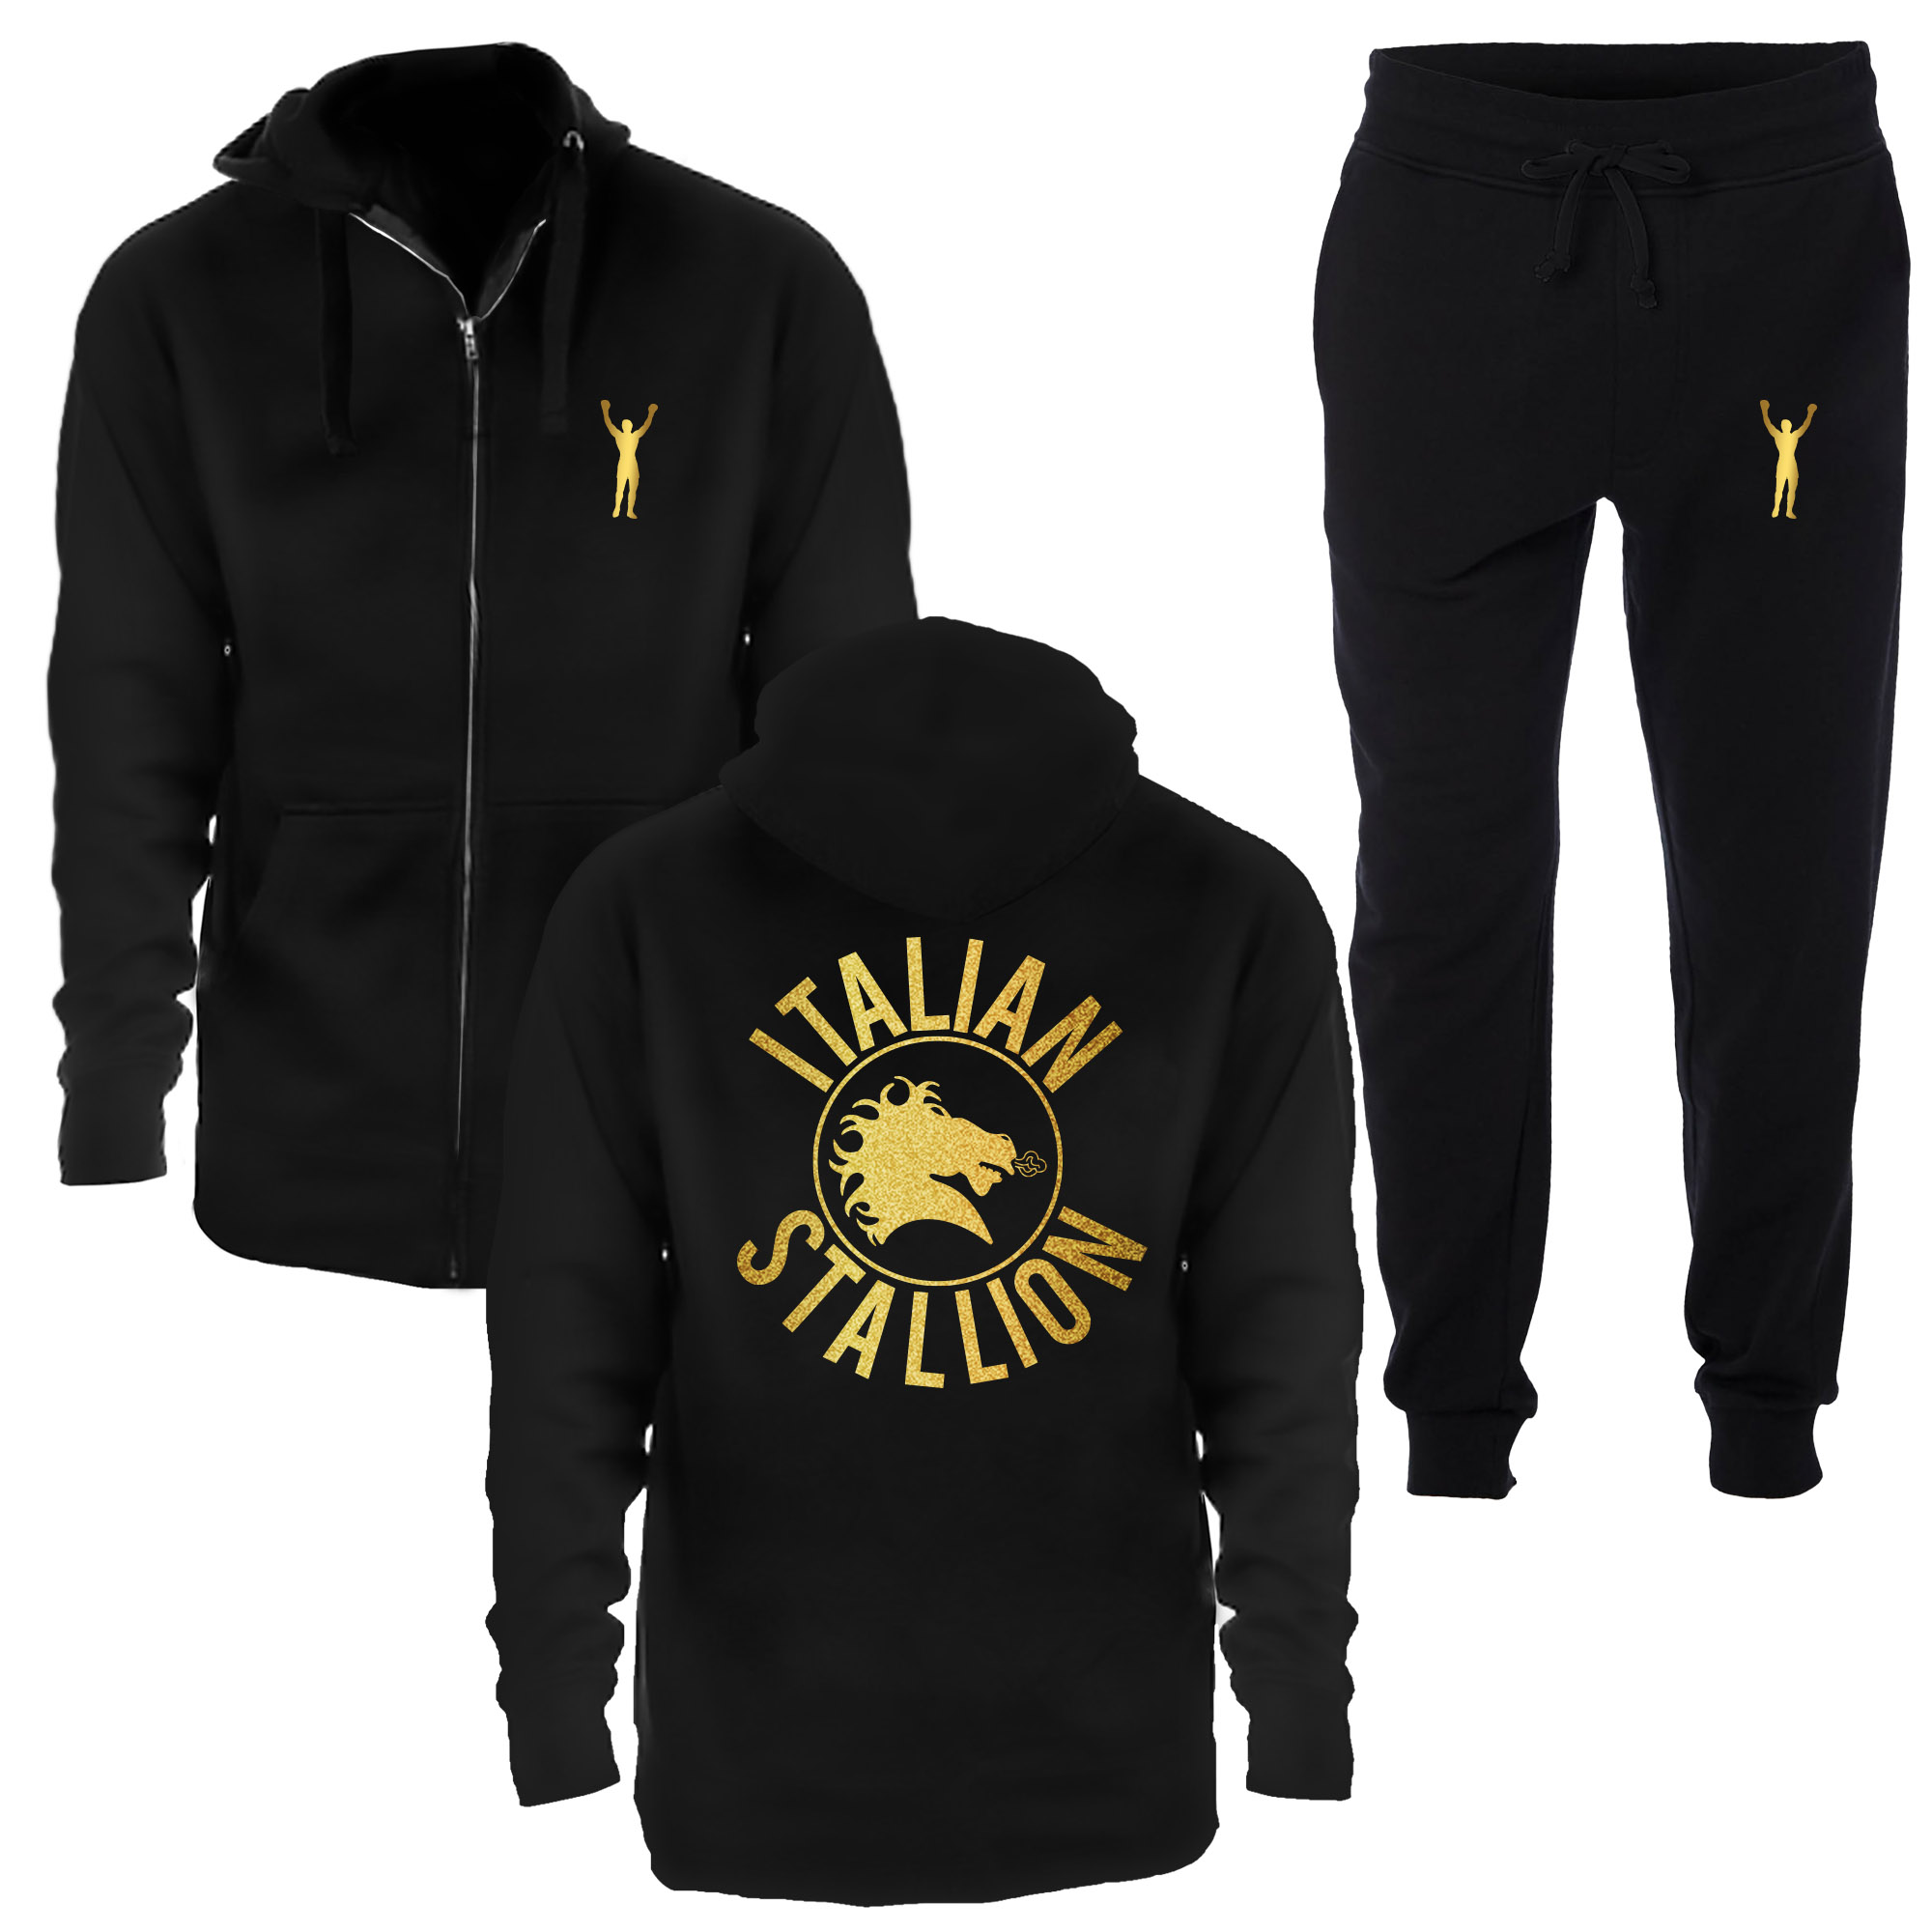 Italian Stallion Metallic Gold Jogging Suit